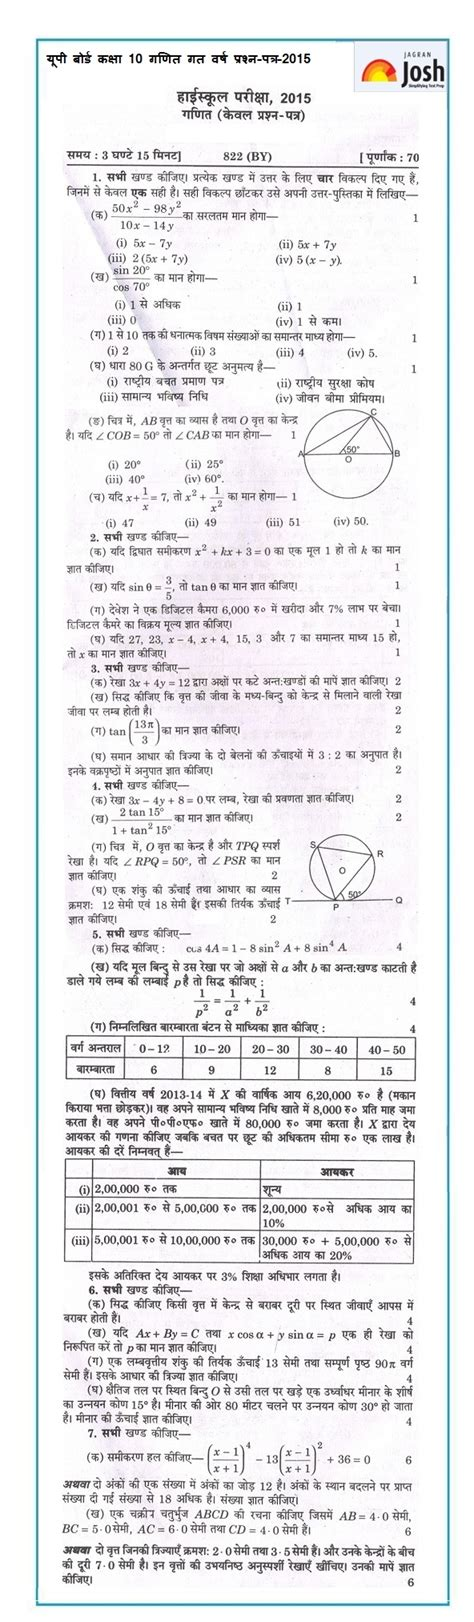 Math Models Worksheet 4 1 Relations And Functions Answers by Collections Of Math Models Worksheets Easy Worksheet Ideas